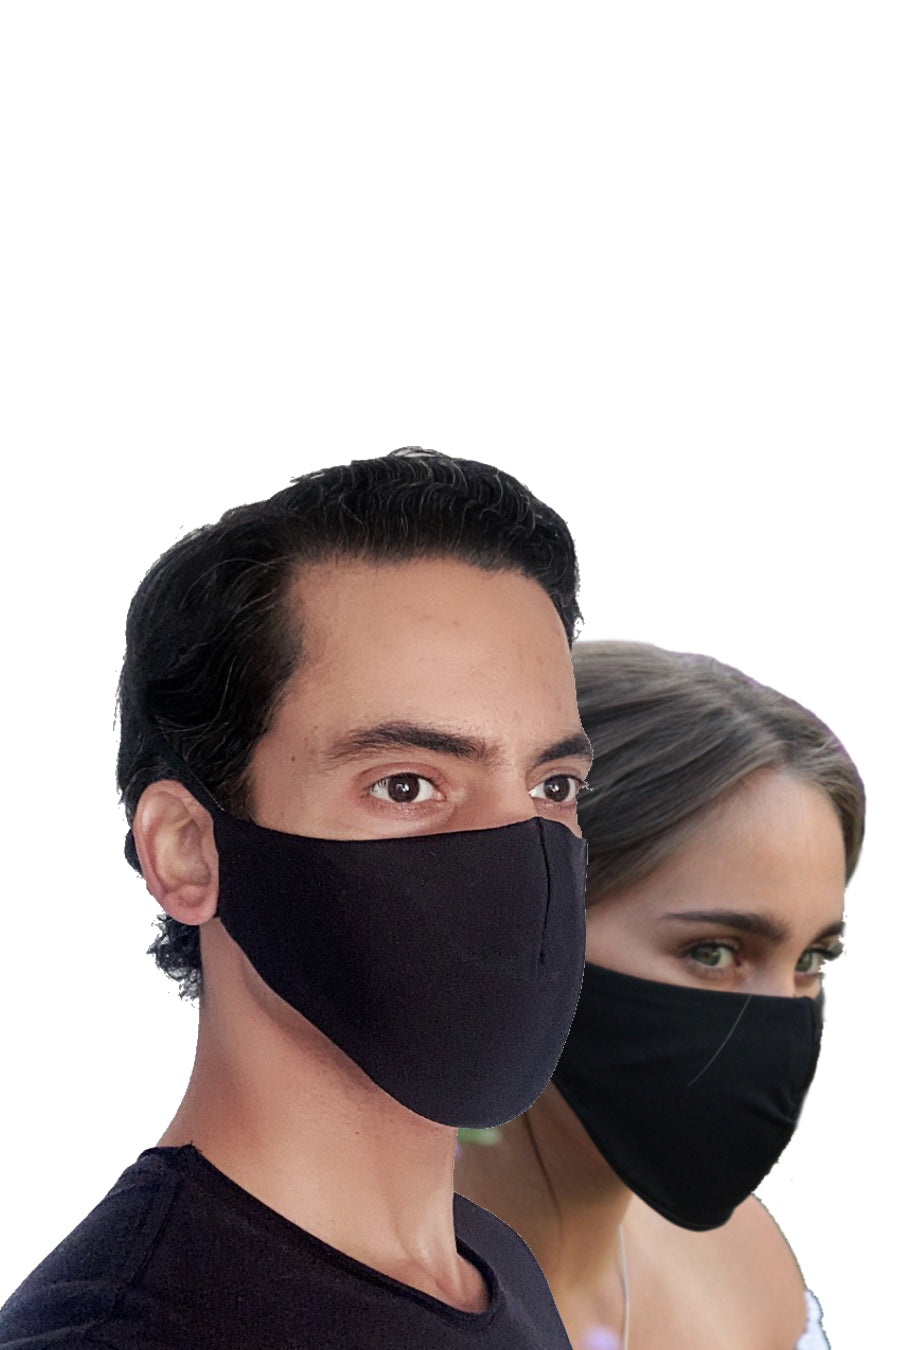 MultiLayer, ReUsable Face Masks